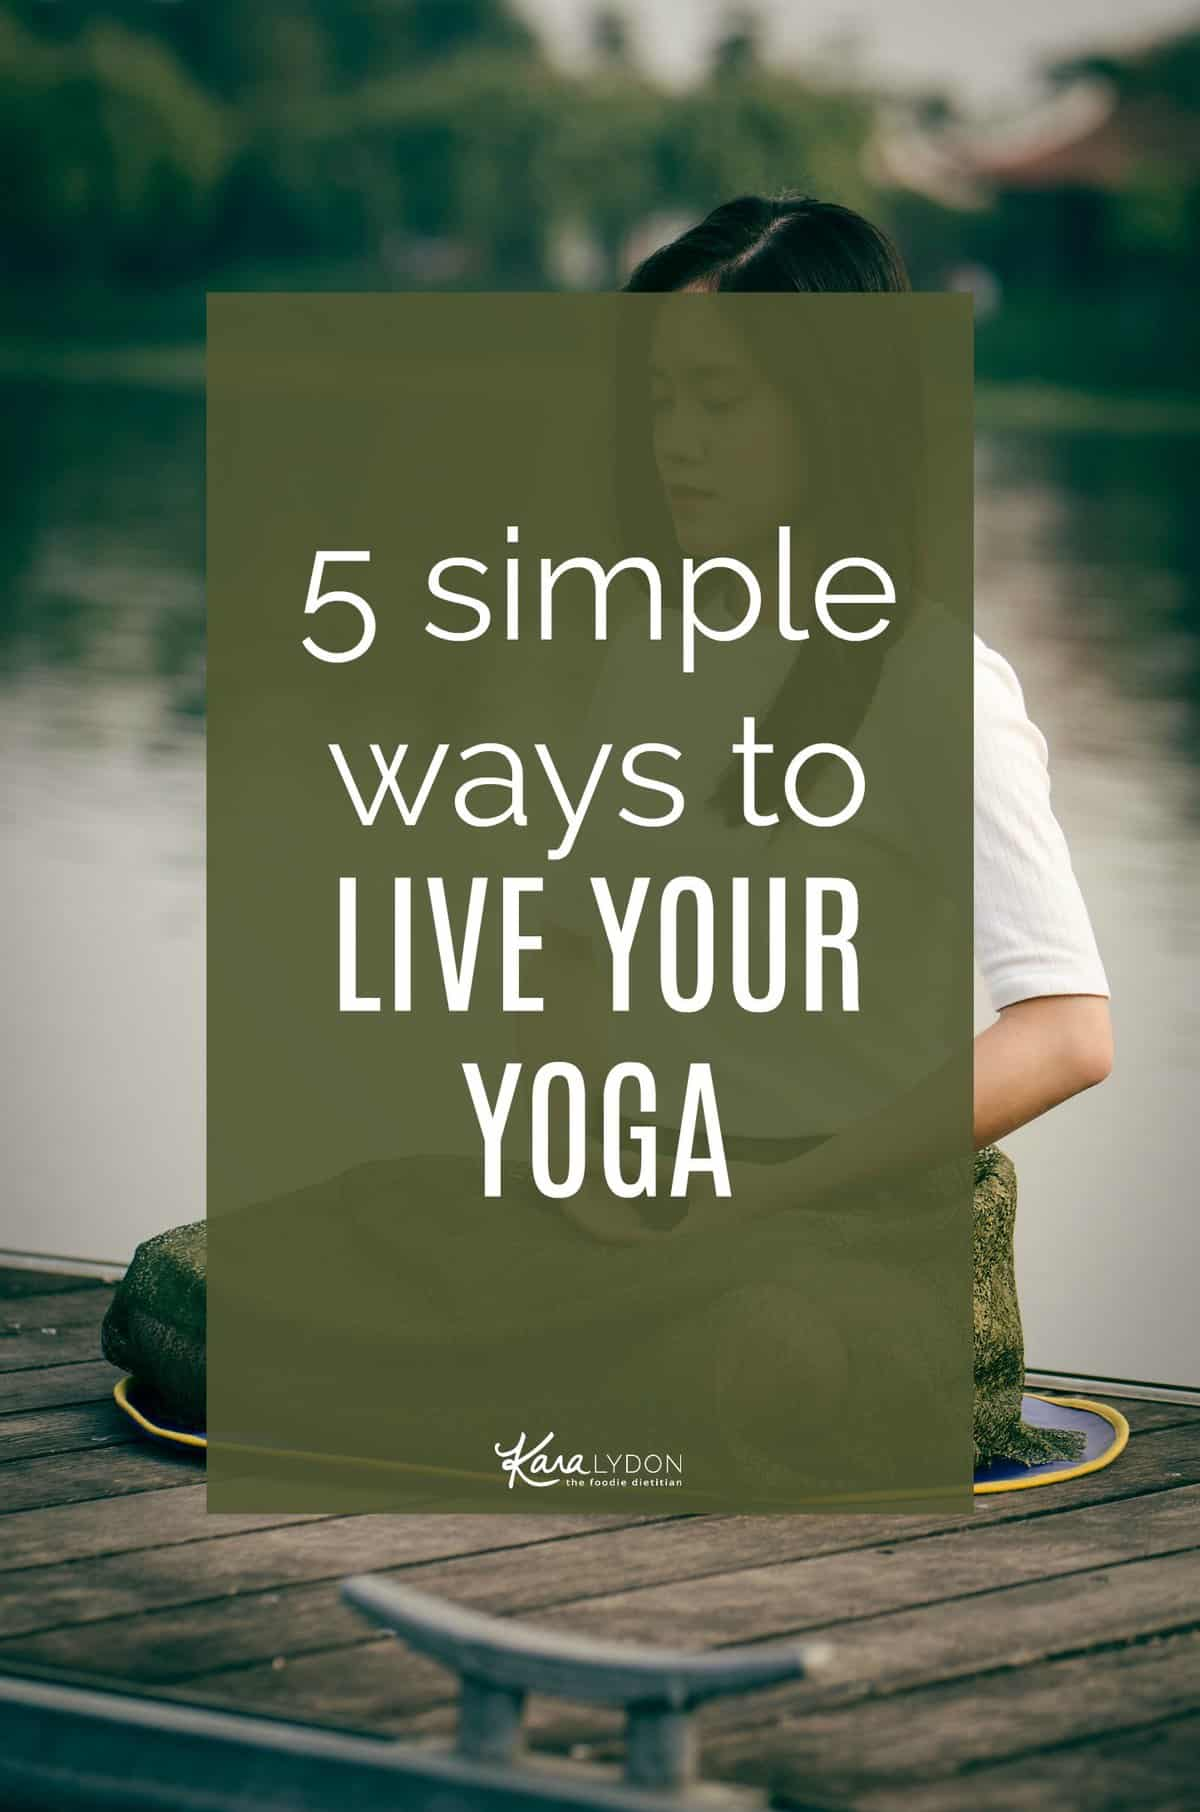 The physical practice of yoga is only one tiny piece of what yoga truly means. So, how do you go beyond the physical practice? Today, I'm sharing 5 simple ways to live your yoga.